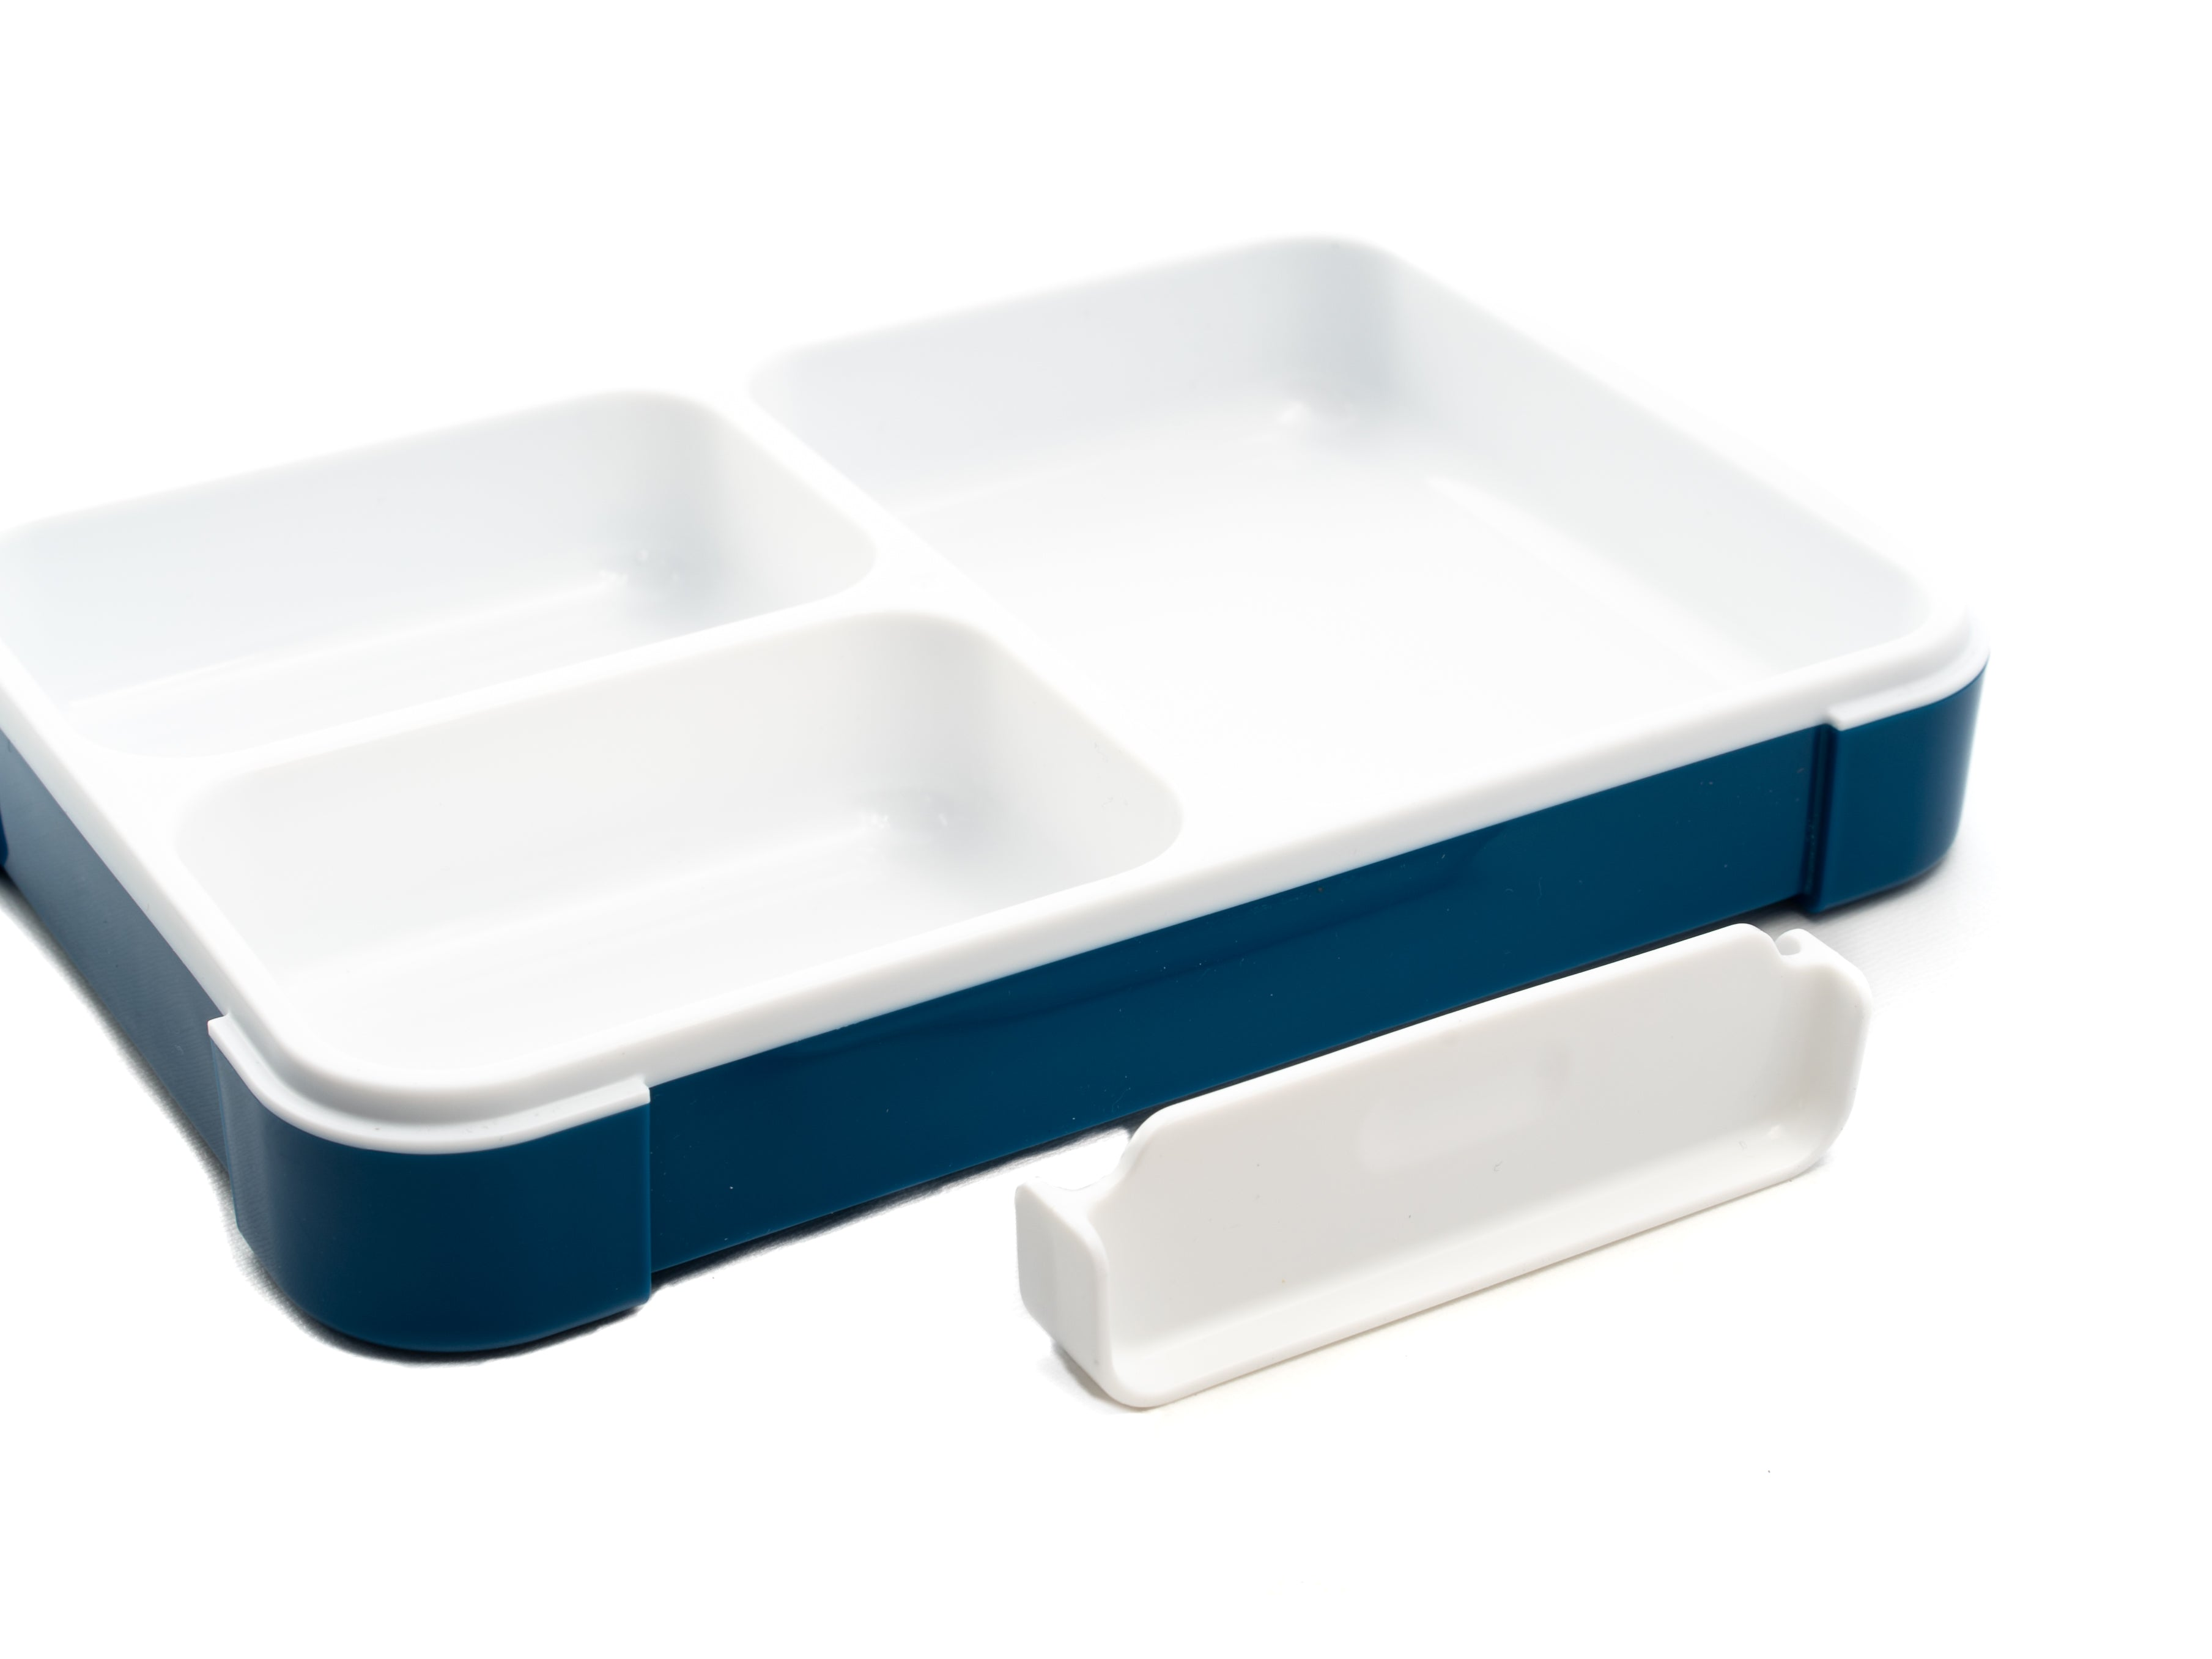 Foodman Bento Box 600 ml | Blue by CB Japan - Bento&co Japanese Bento Lunch Boxes and Kitchenware Specialists